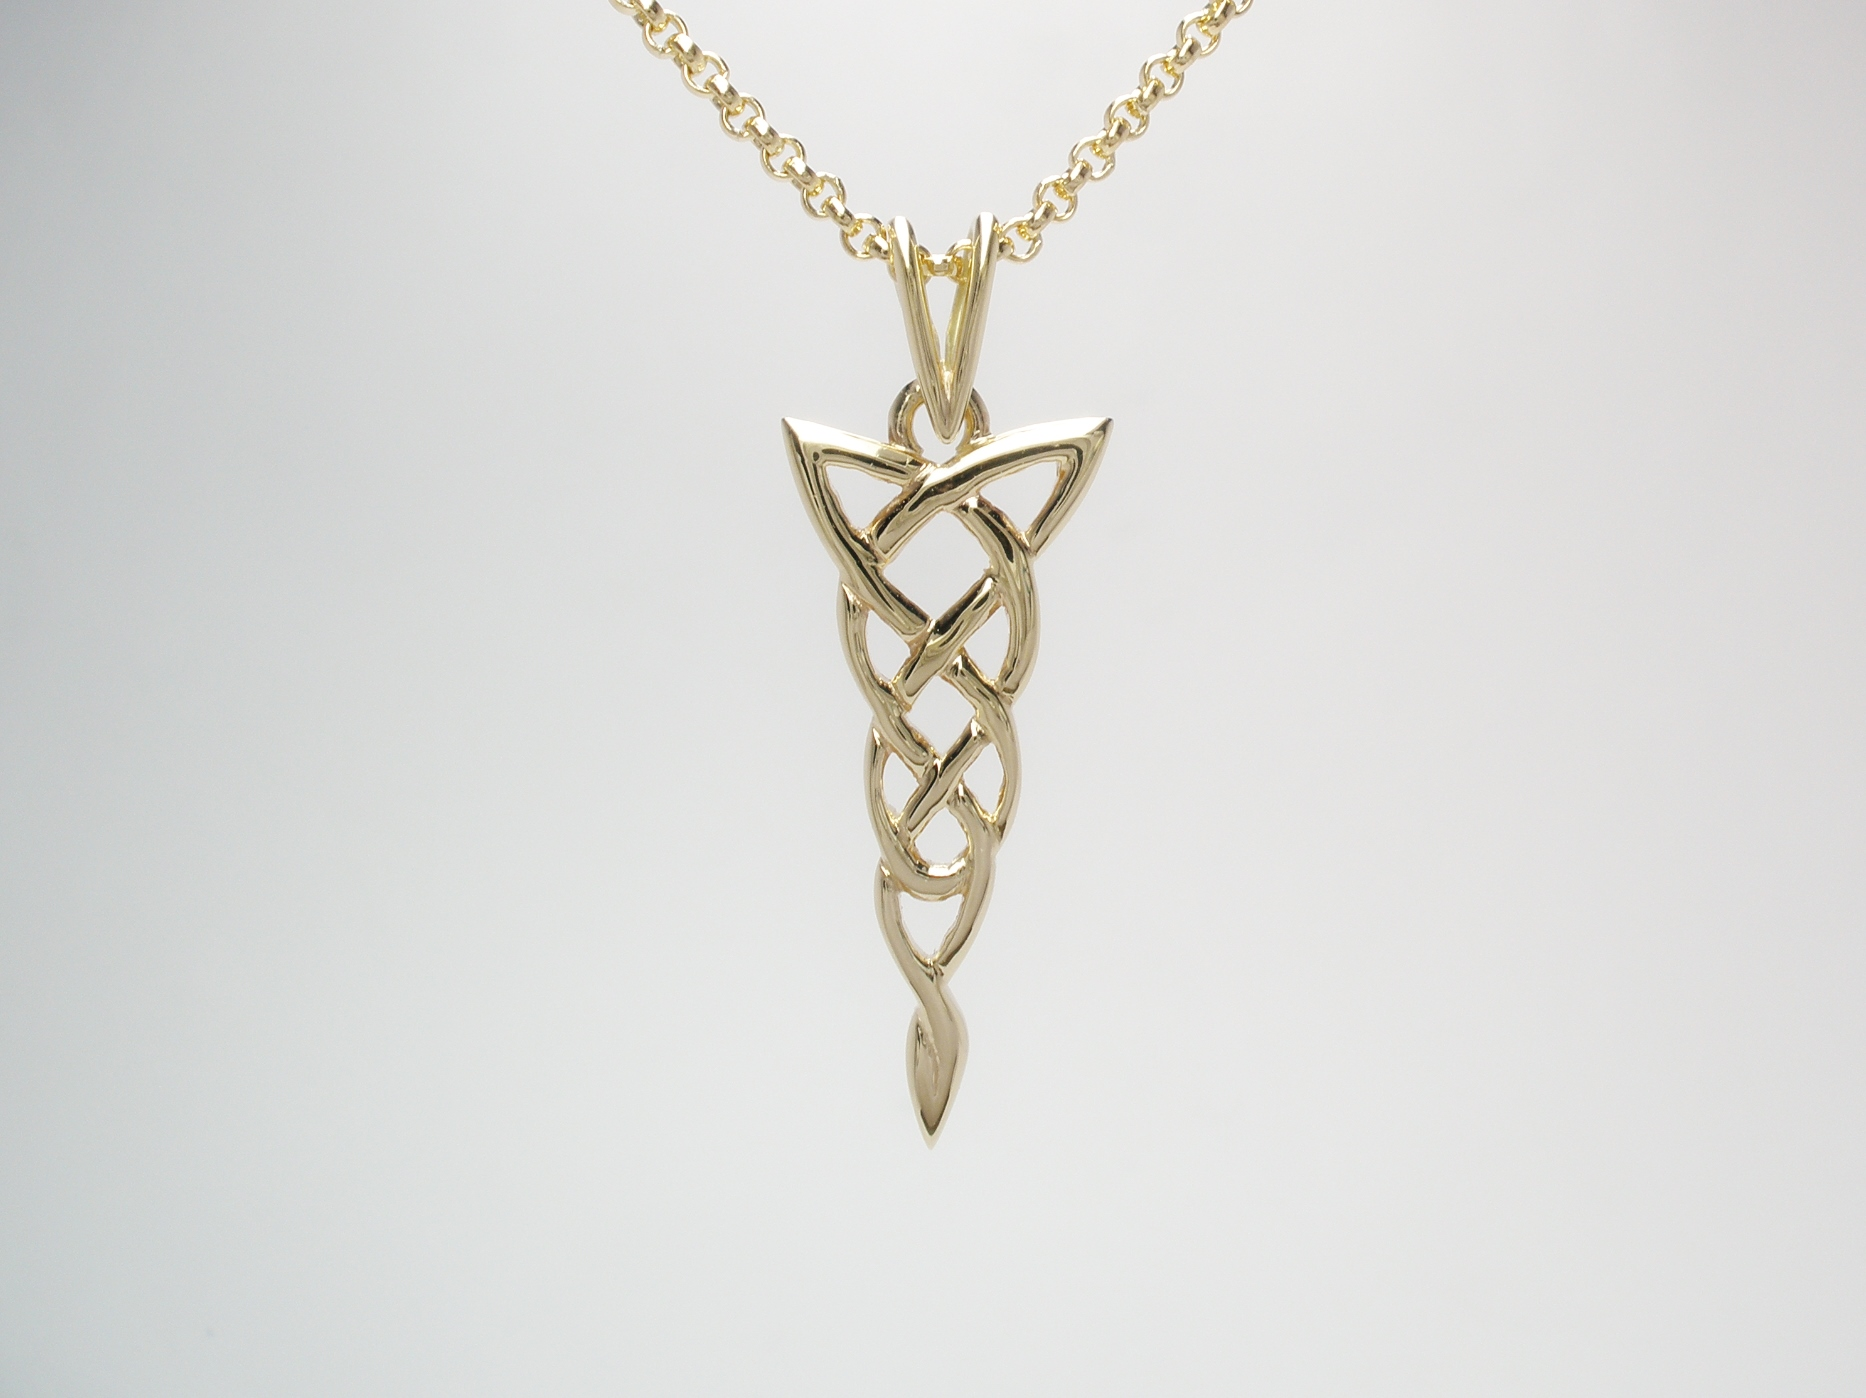 A 9ct. hand carved Celtic pattern pendant.